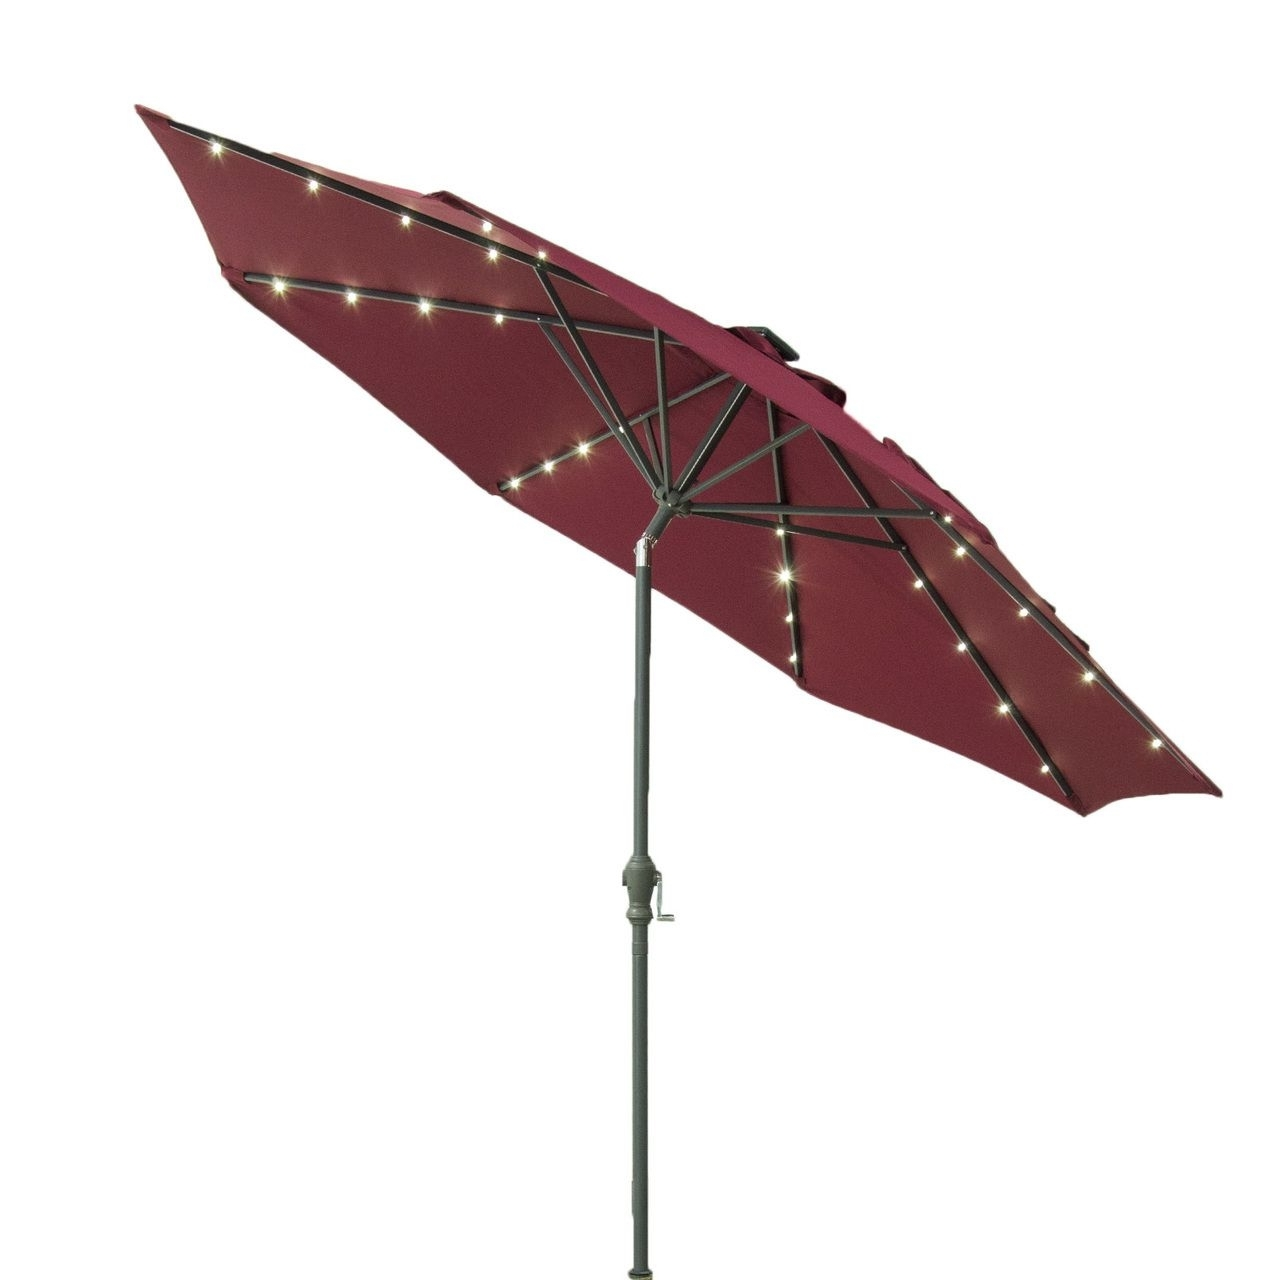 Widely Used Lighted Umbrellas For Patio Throughout Casun Garden 9Ft Solar Powered Led Lighted Outdoor Patio Aluminum (View 20 of 20)